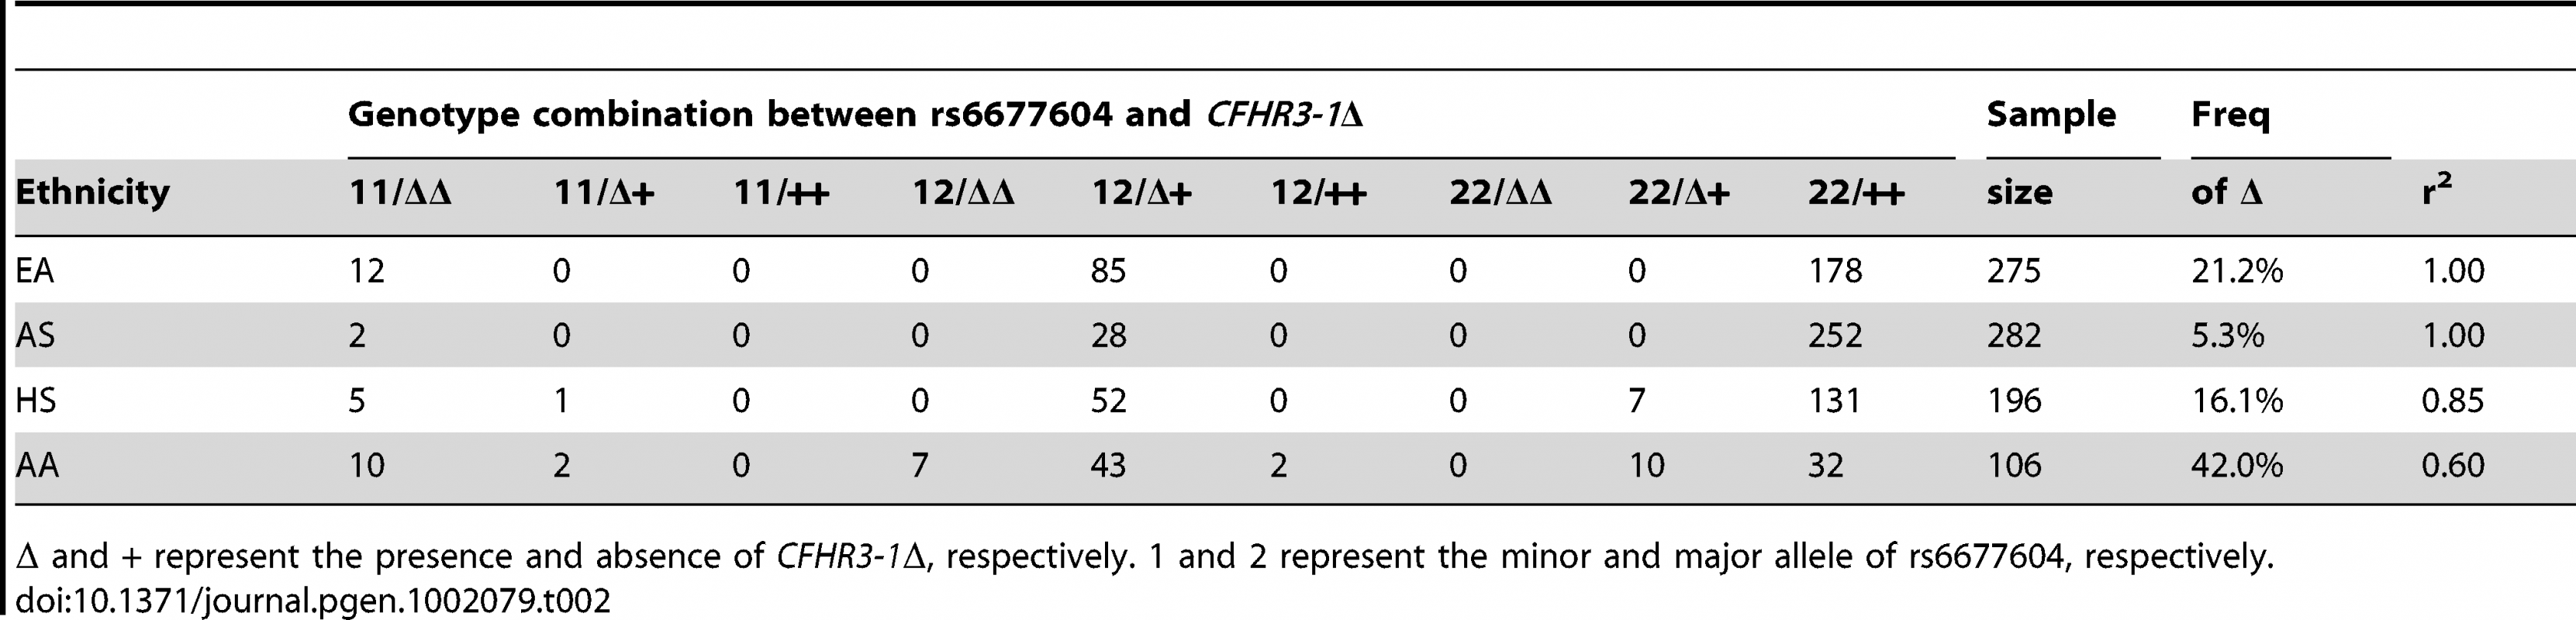 Pairwise LD between rs6677604 and <i>CFHR3-1</i>Δ in four ethnic groups.